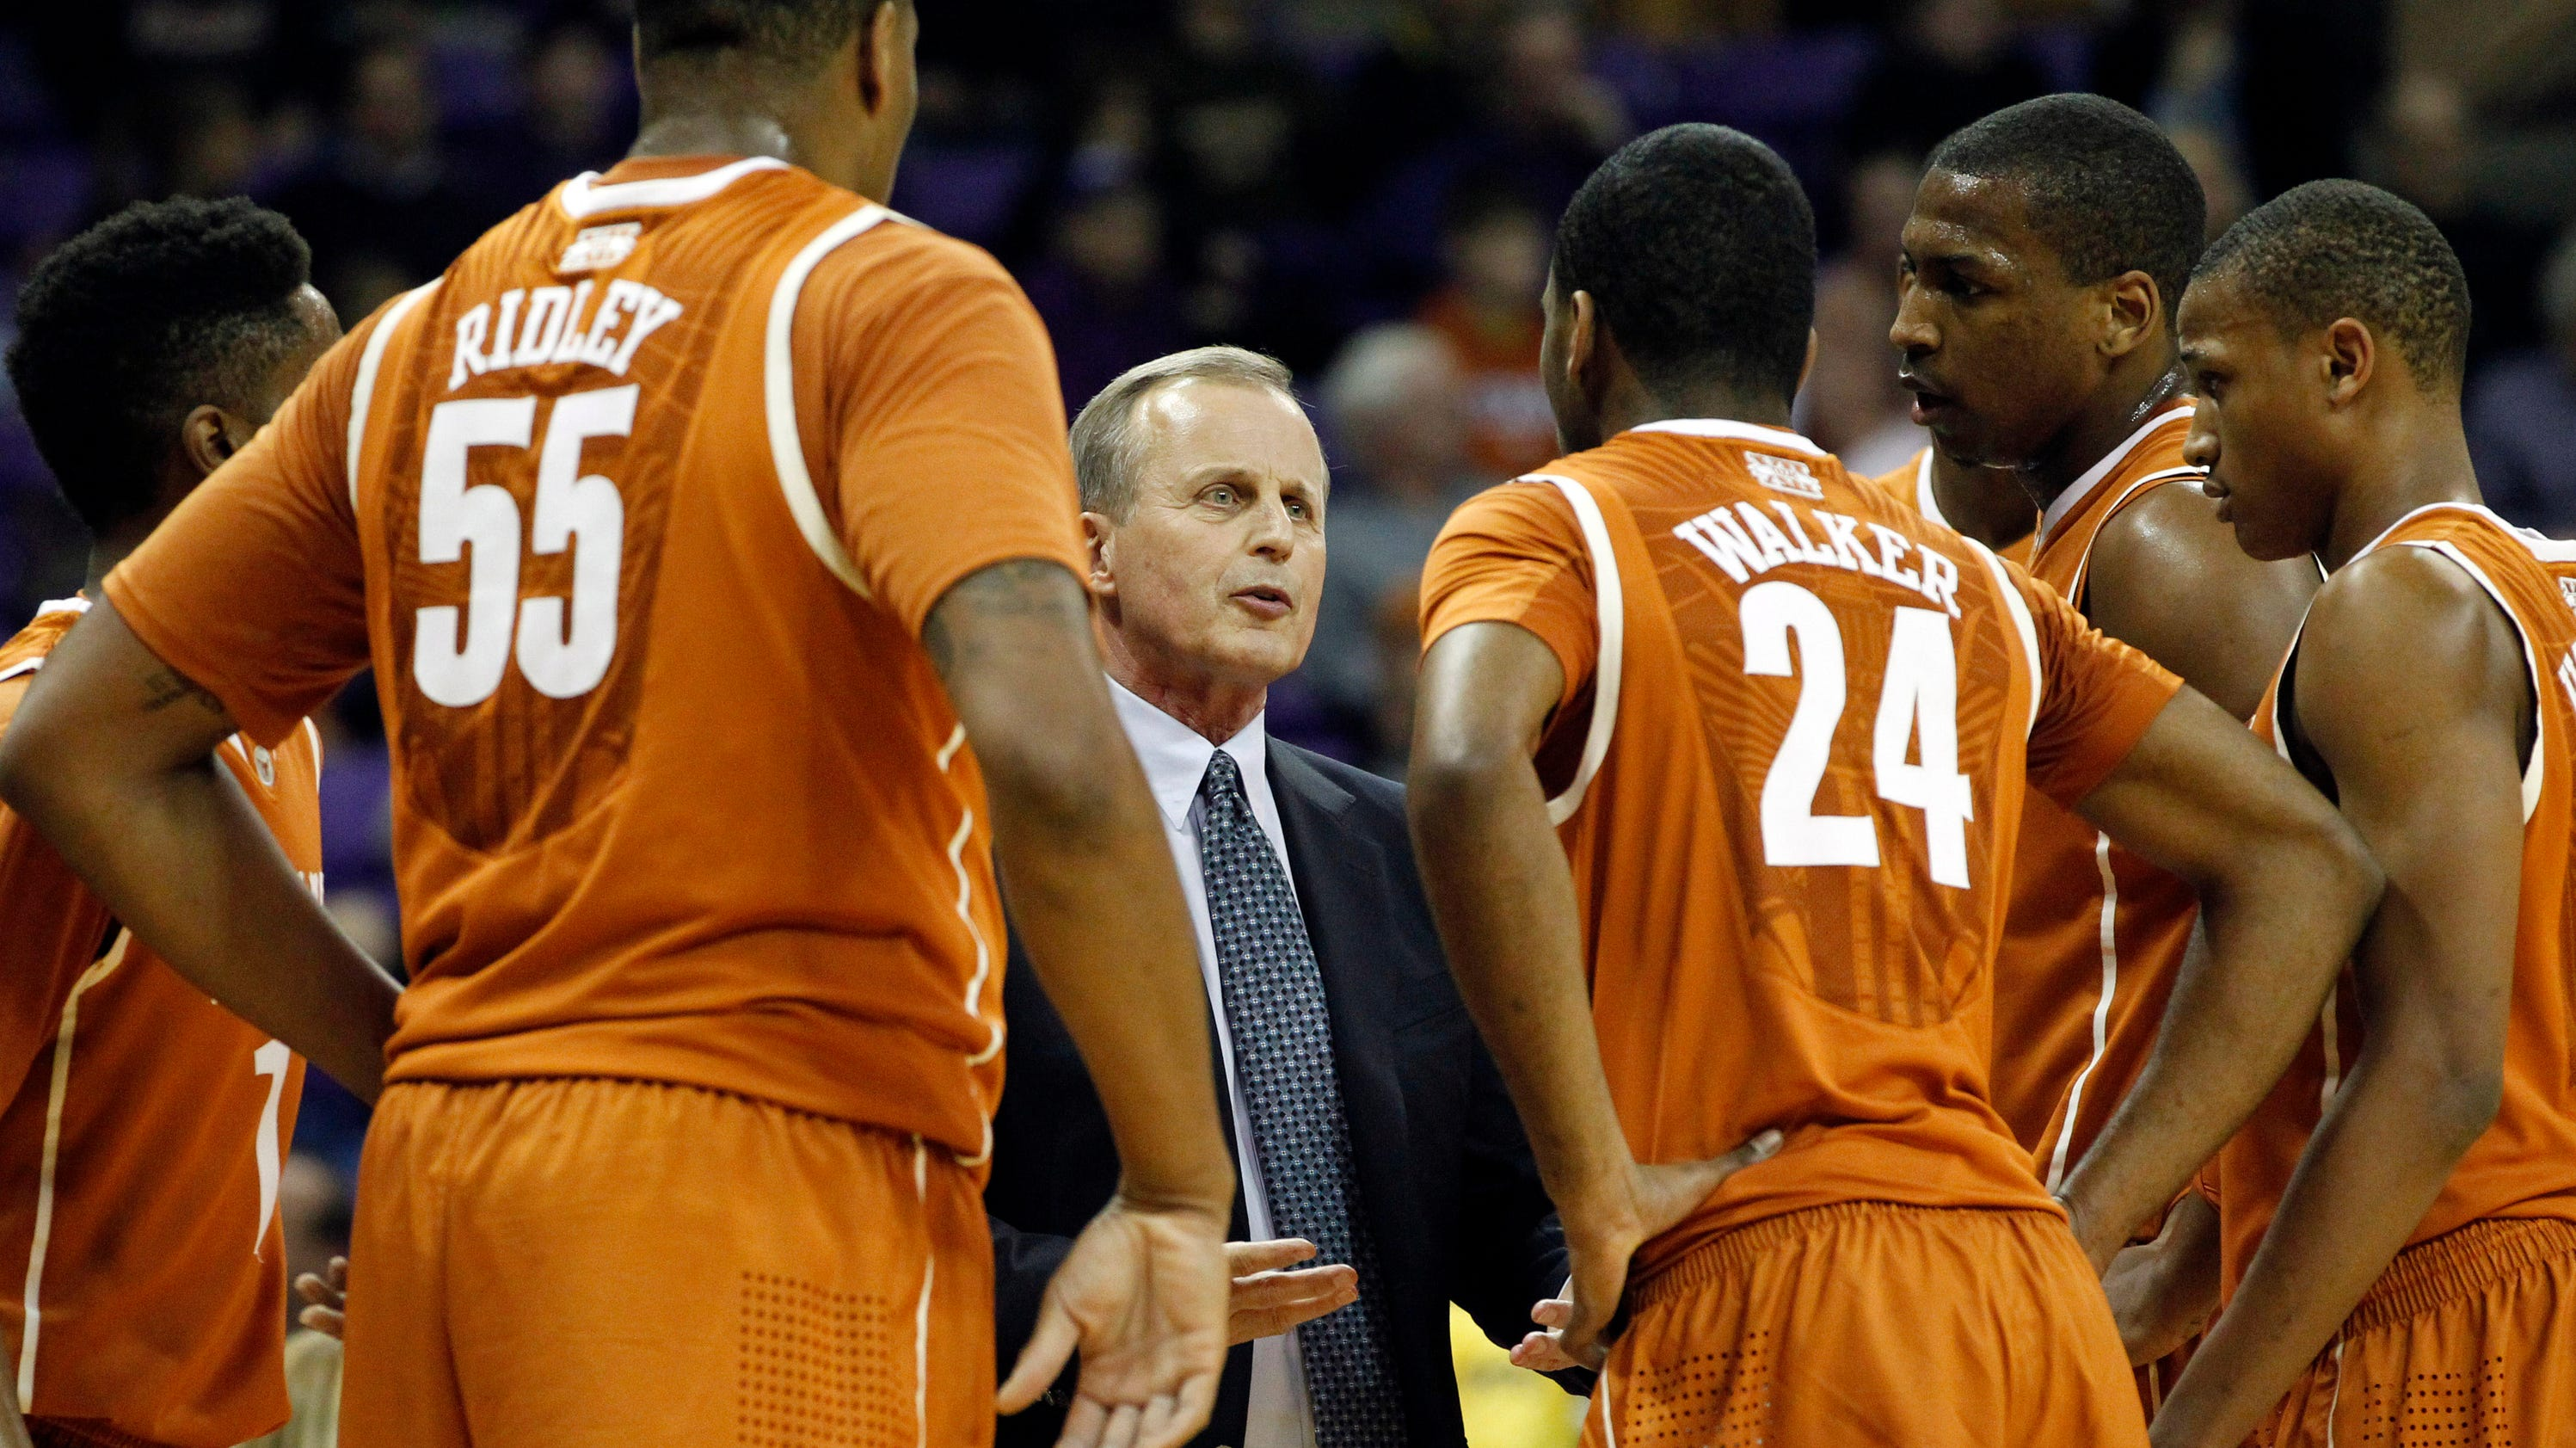 12 best images about texas on pinterest home texas longhorns and - The Revival Of Texas Basketball And Coach Rick Barnes